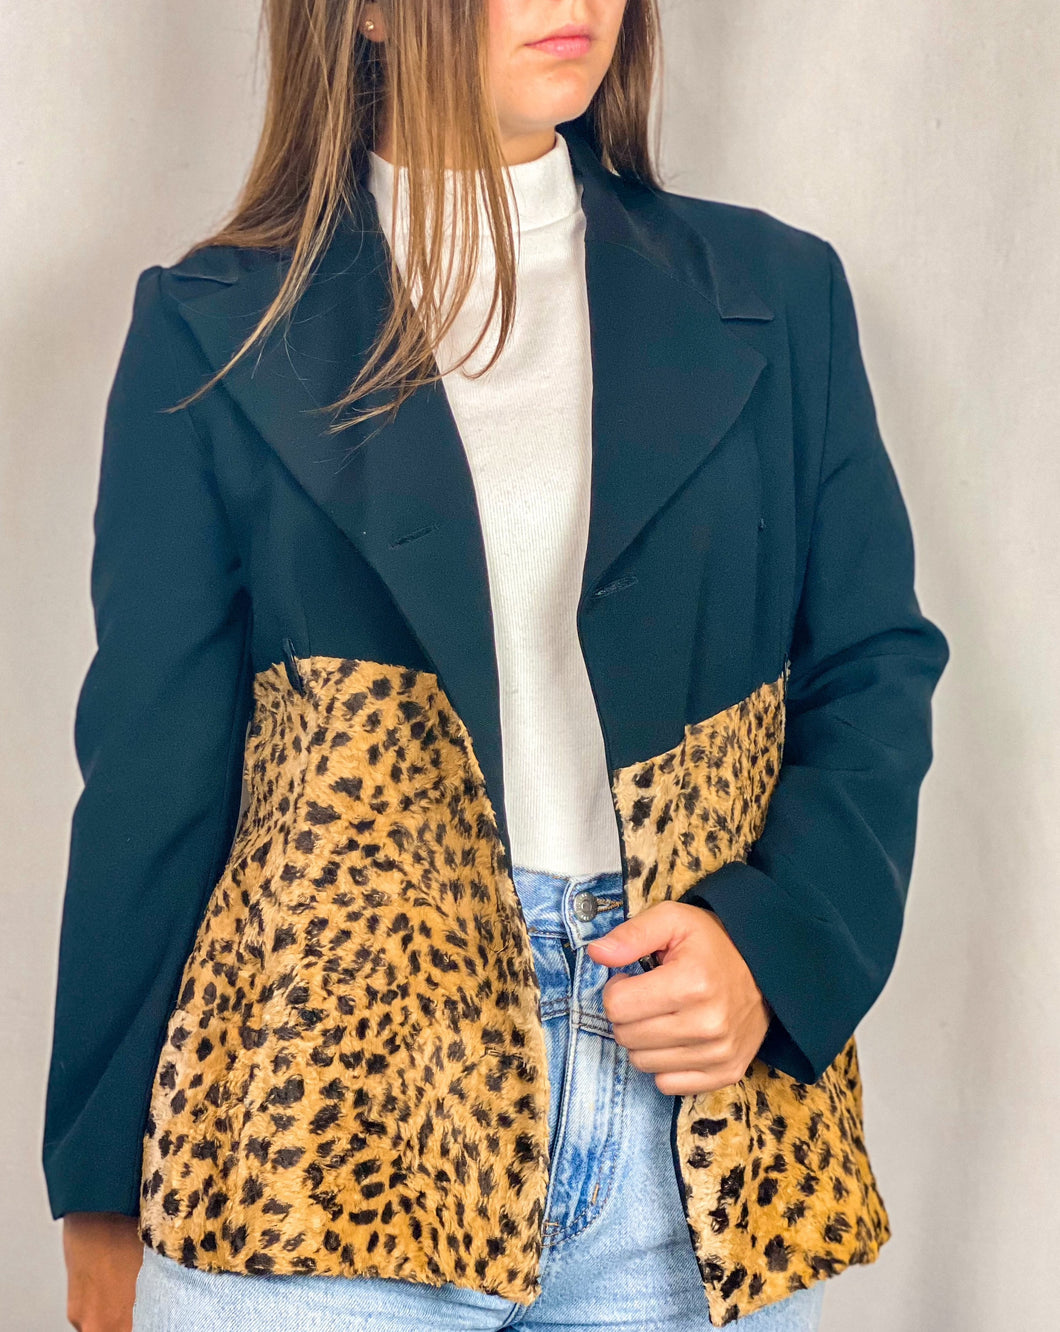 1990s Black and Leopard Duo Blazer